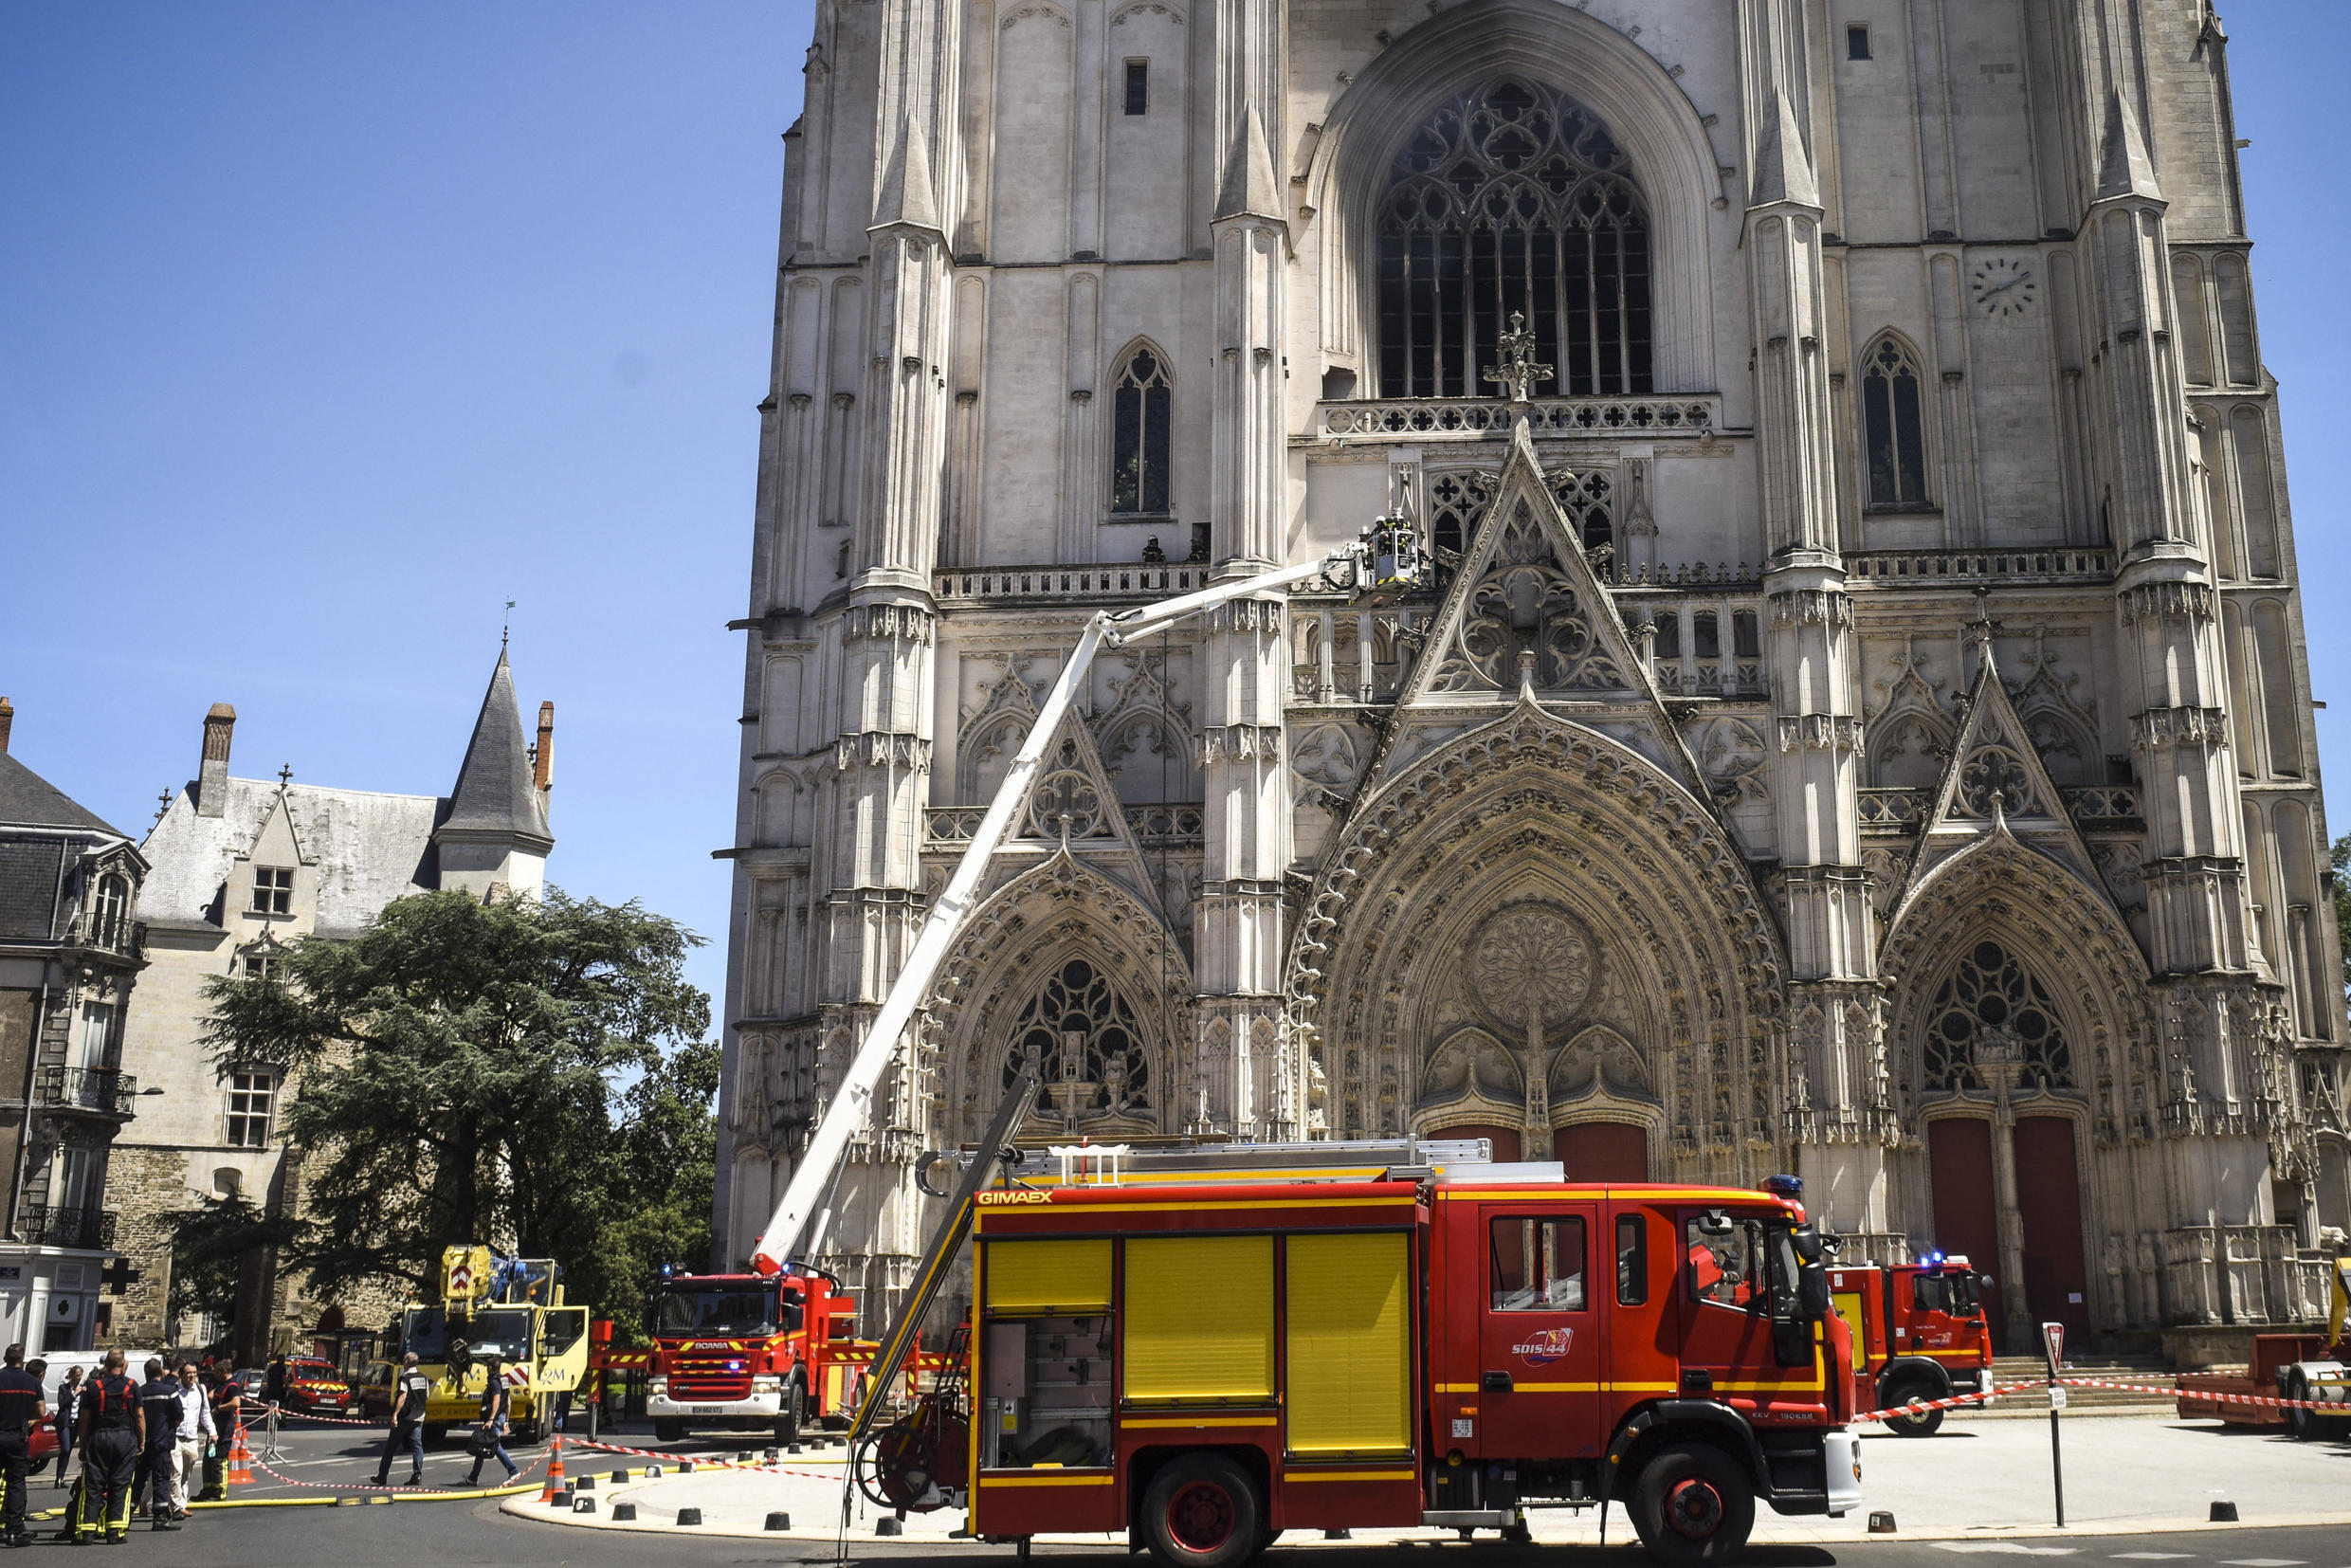 Firefighters are at work at the Cathedral of St Peter and St Paul in Nantes on July 18, 2020 after a fire ravaged parts of the Gothic building before being brought under control, sparking an arson investigation and leaving Catholic officials lamenting the loss of priceless historical artefacts.